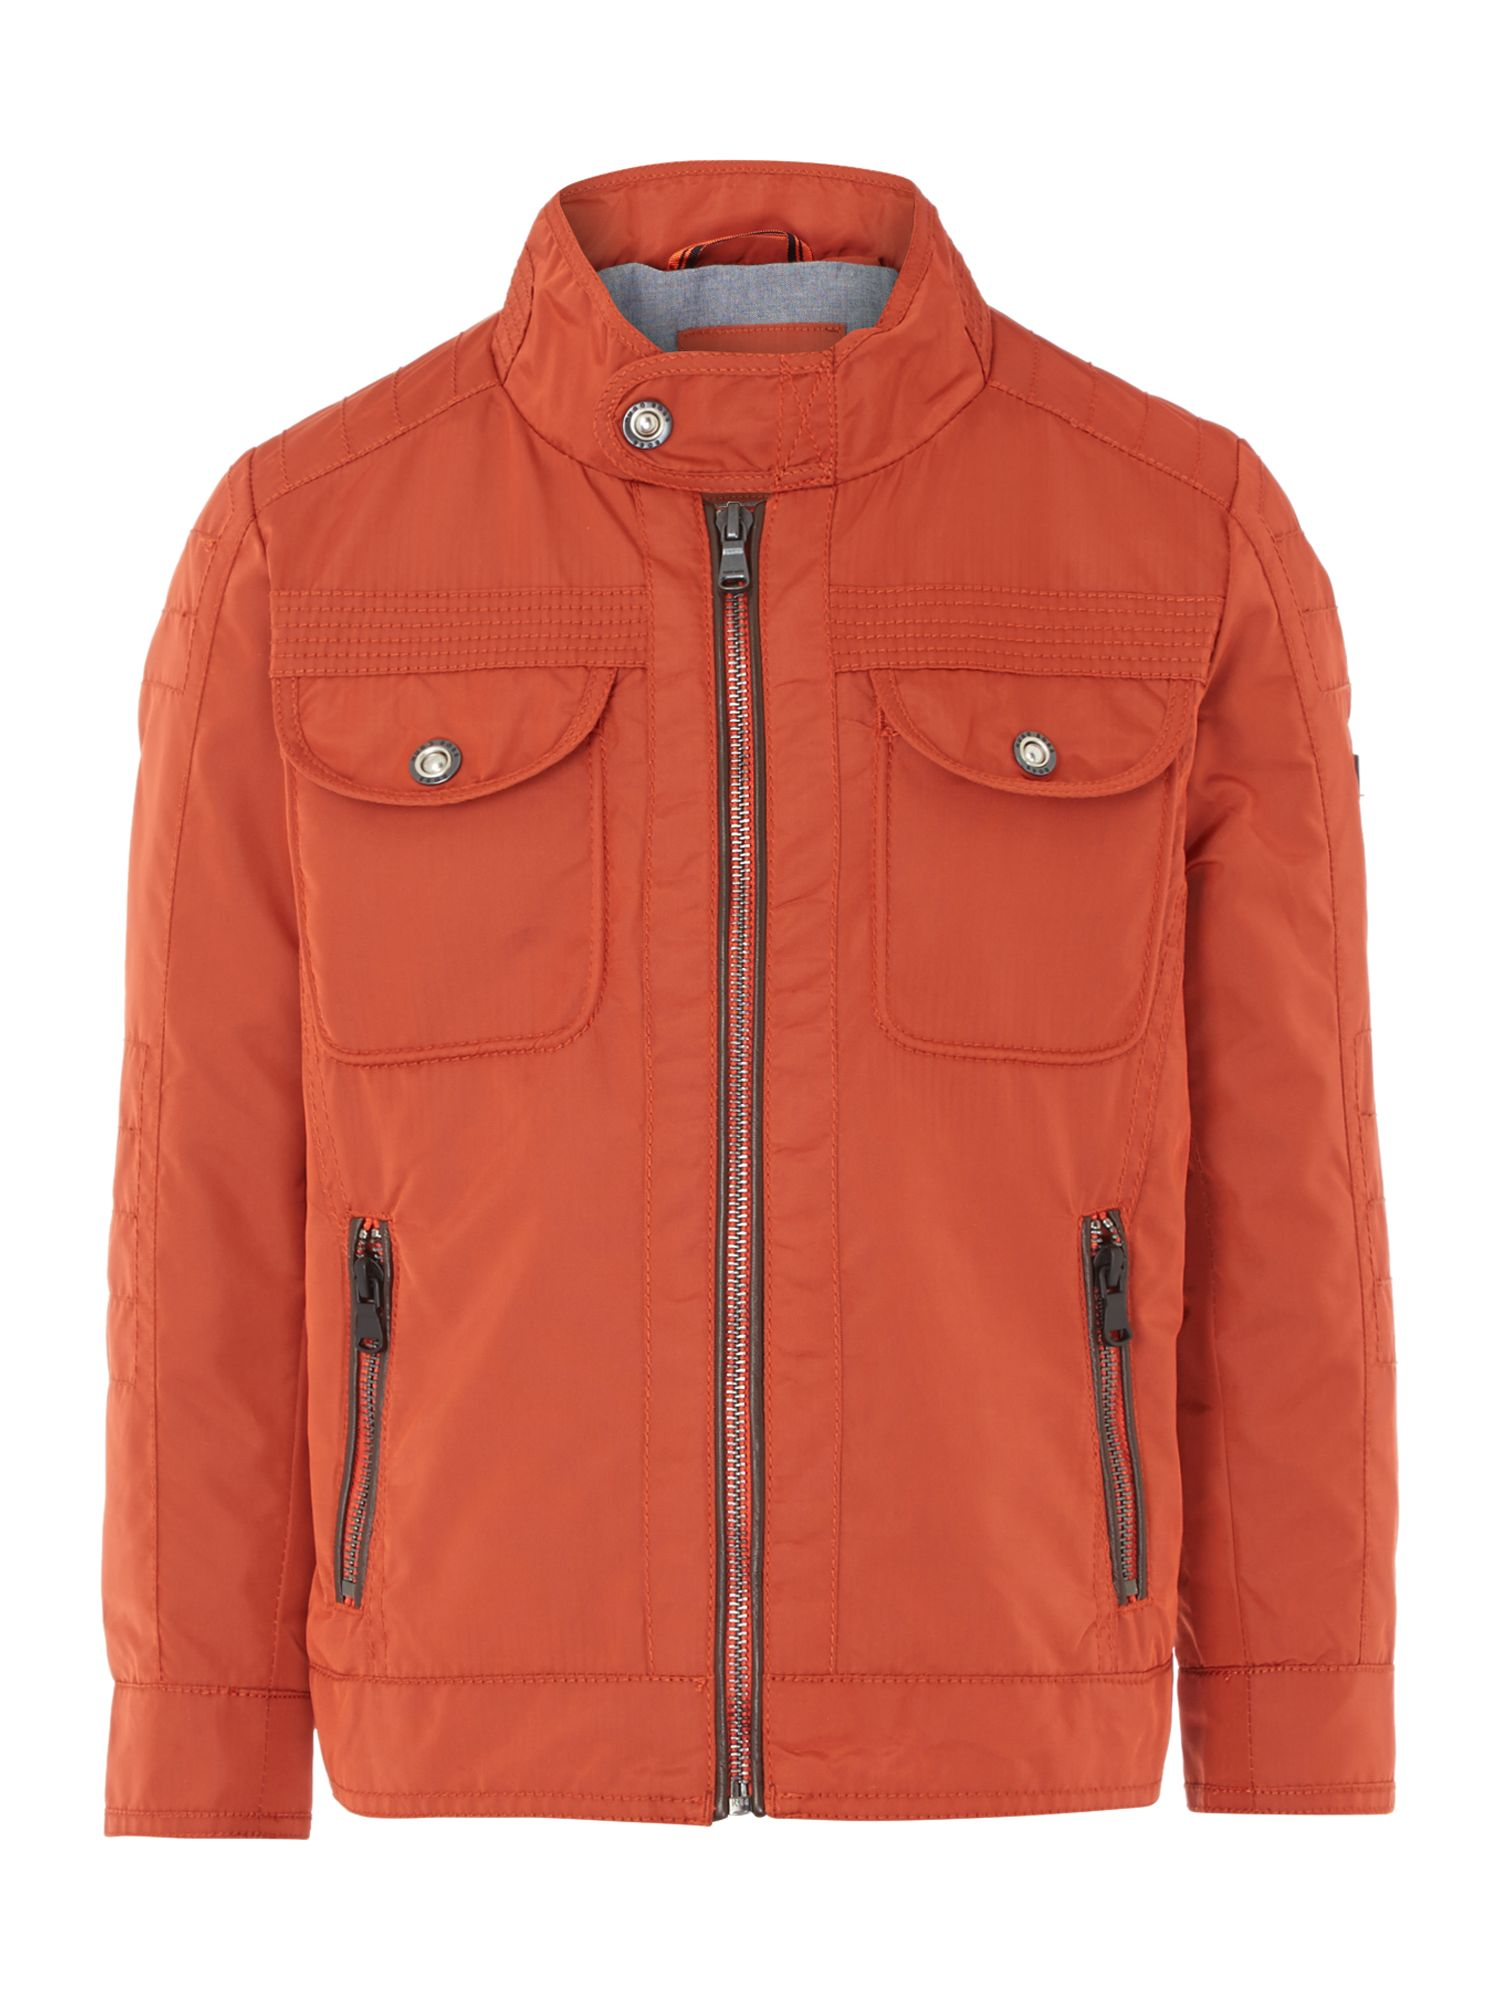 Hugo Boss Boys nylon jacket Orange